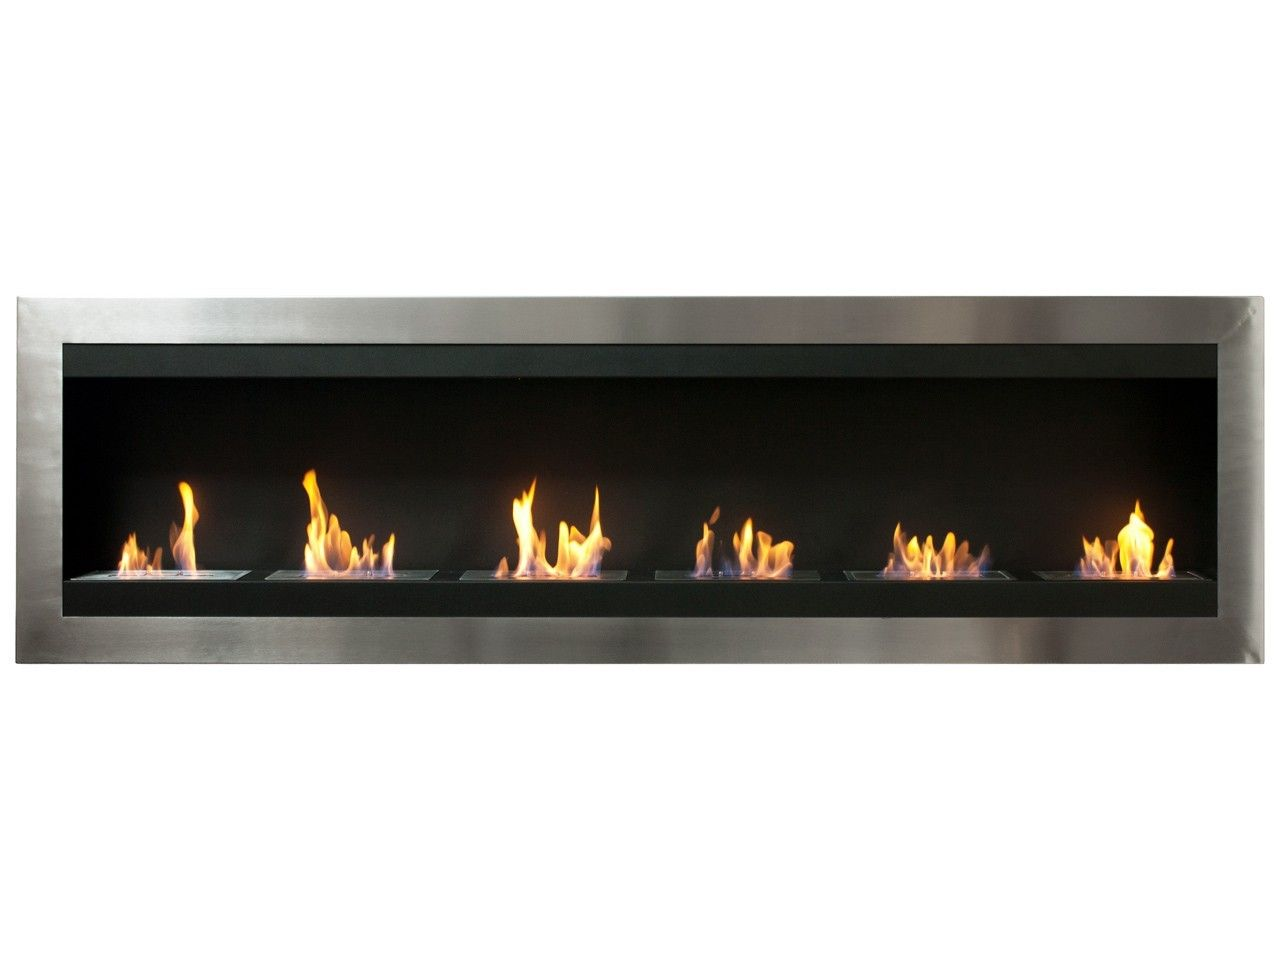 p flame ethanol ventless gel regal wall milan mounted bio inch fireplace fuel